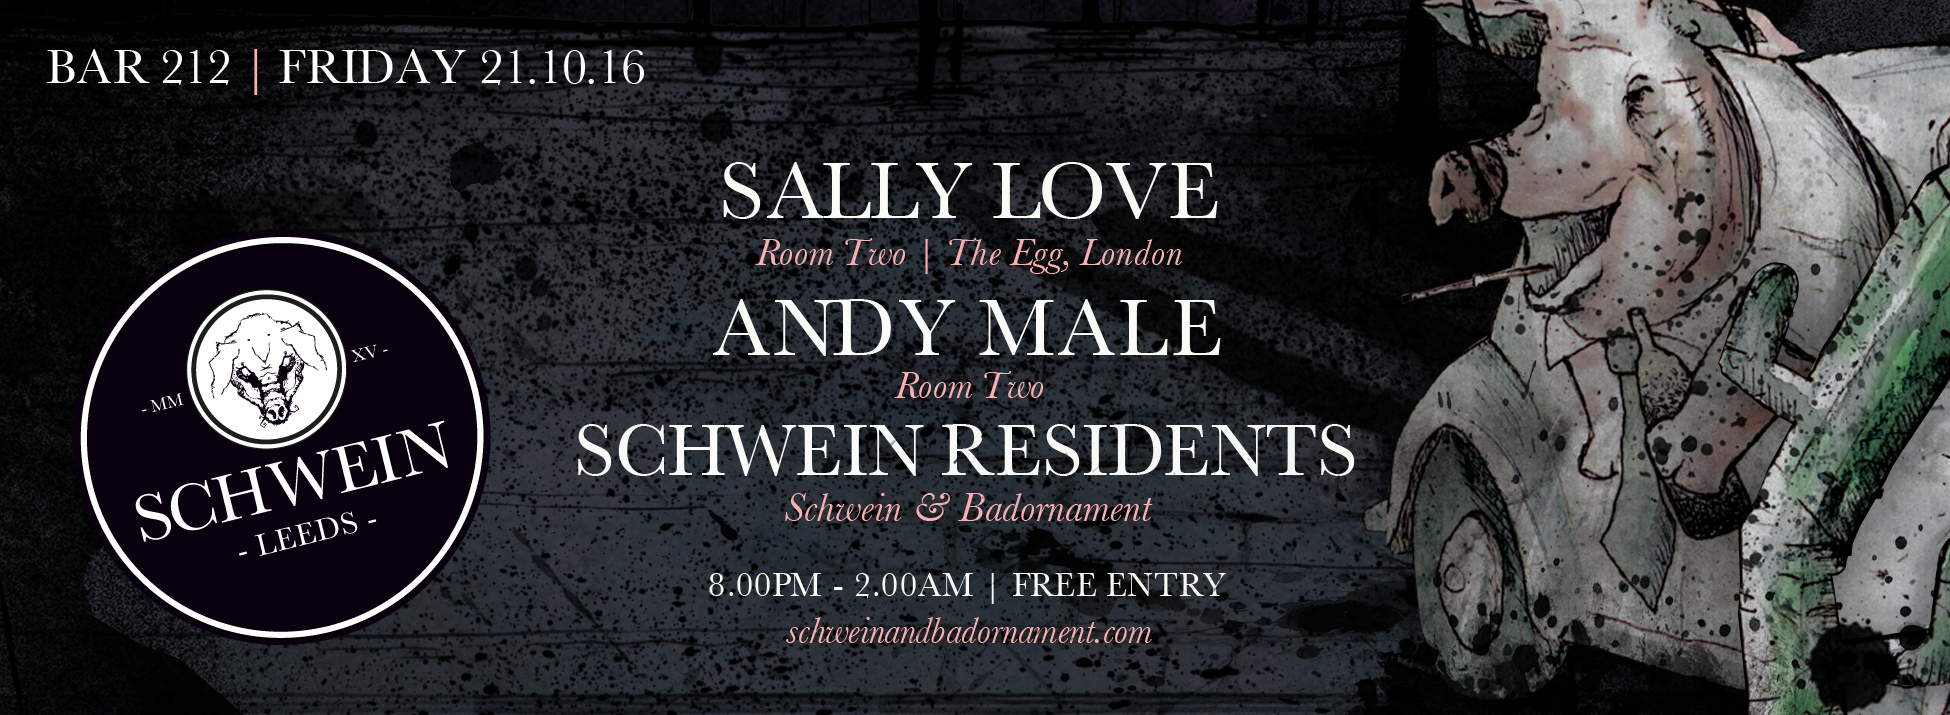 Sally Love & Andy Male @ 212…